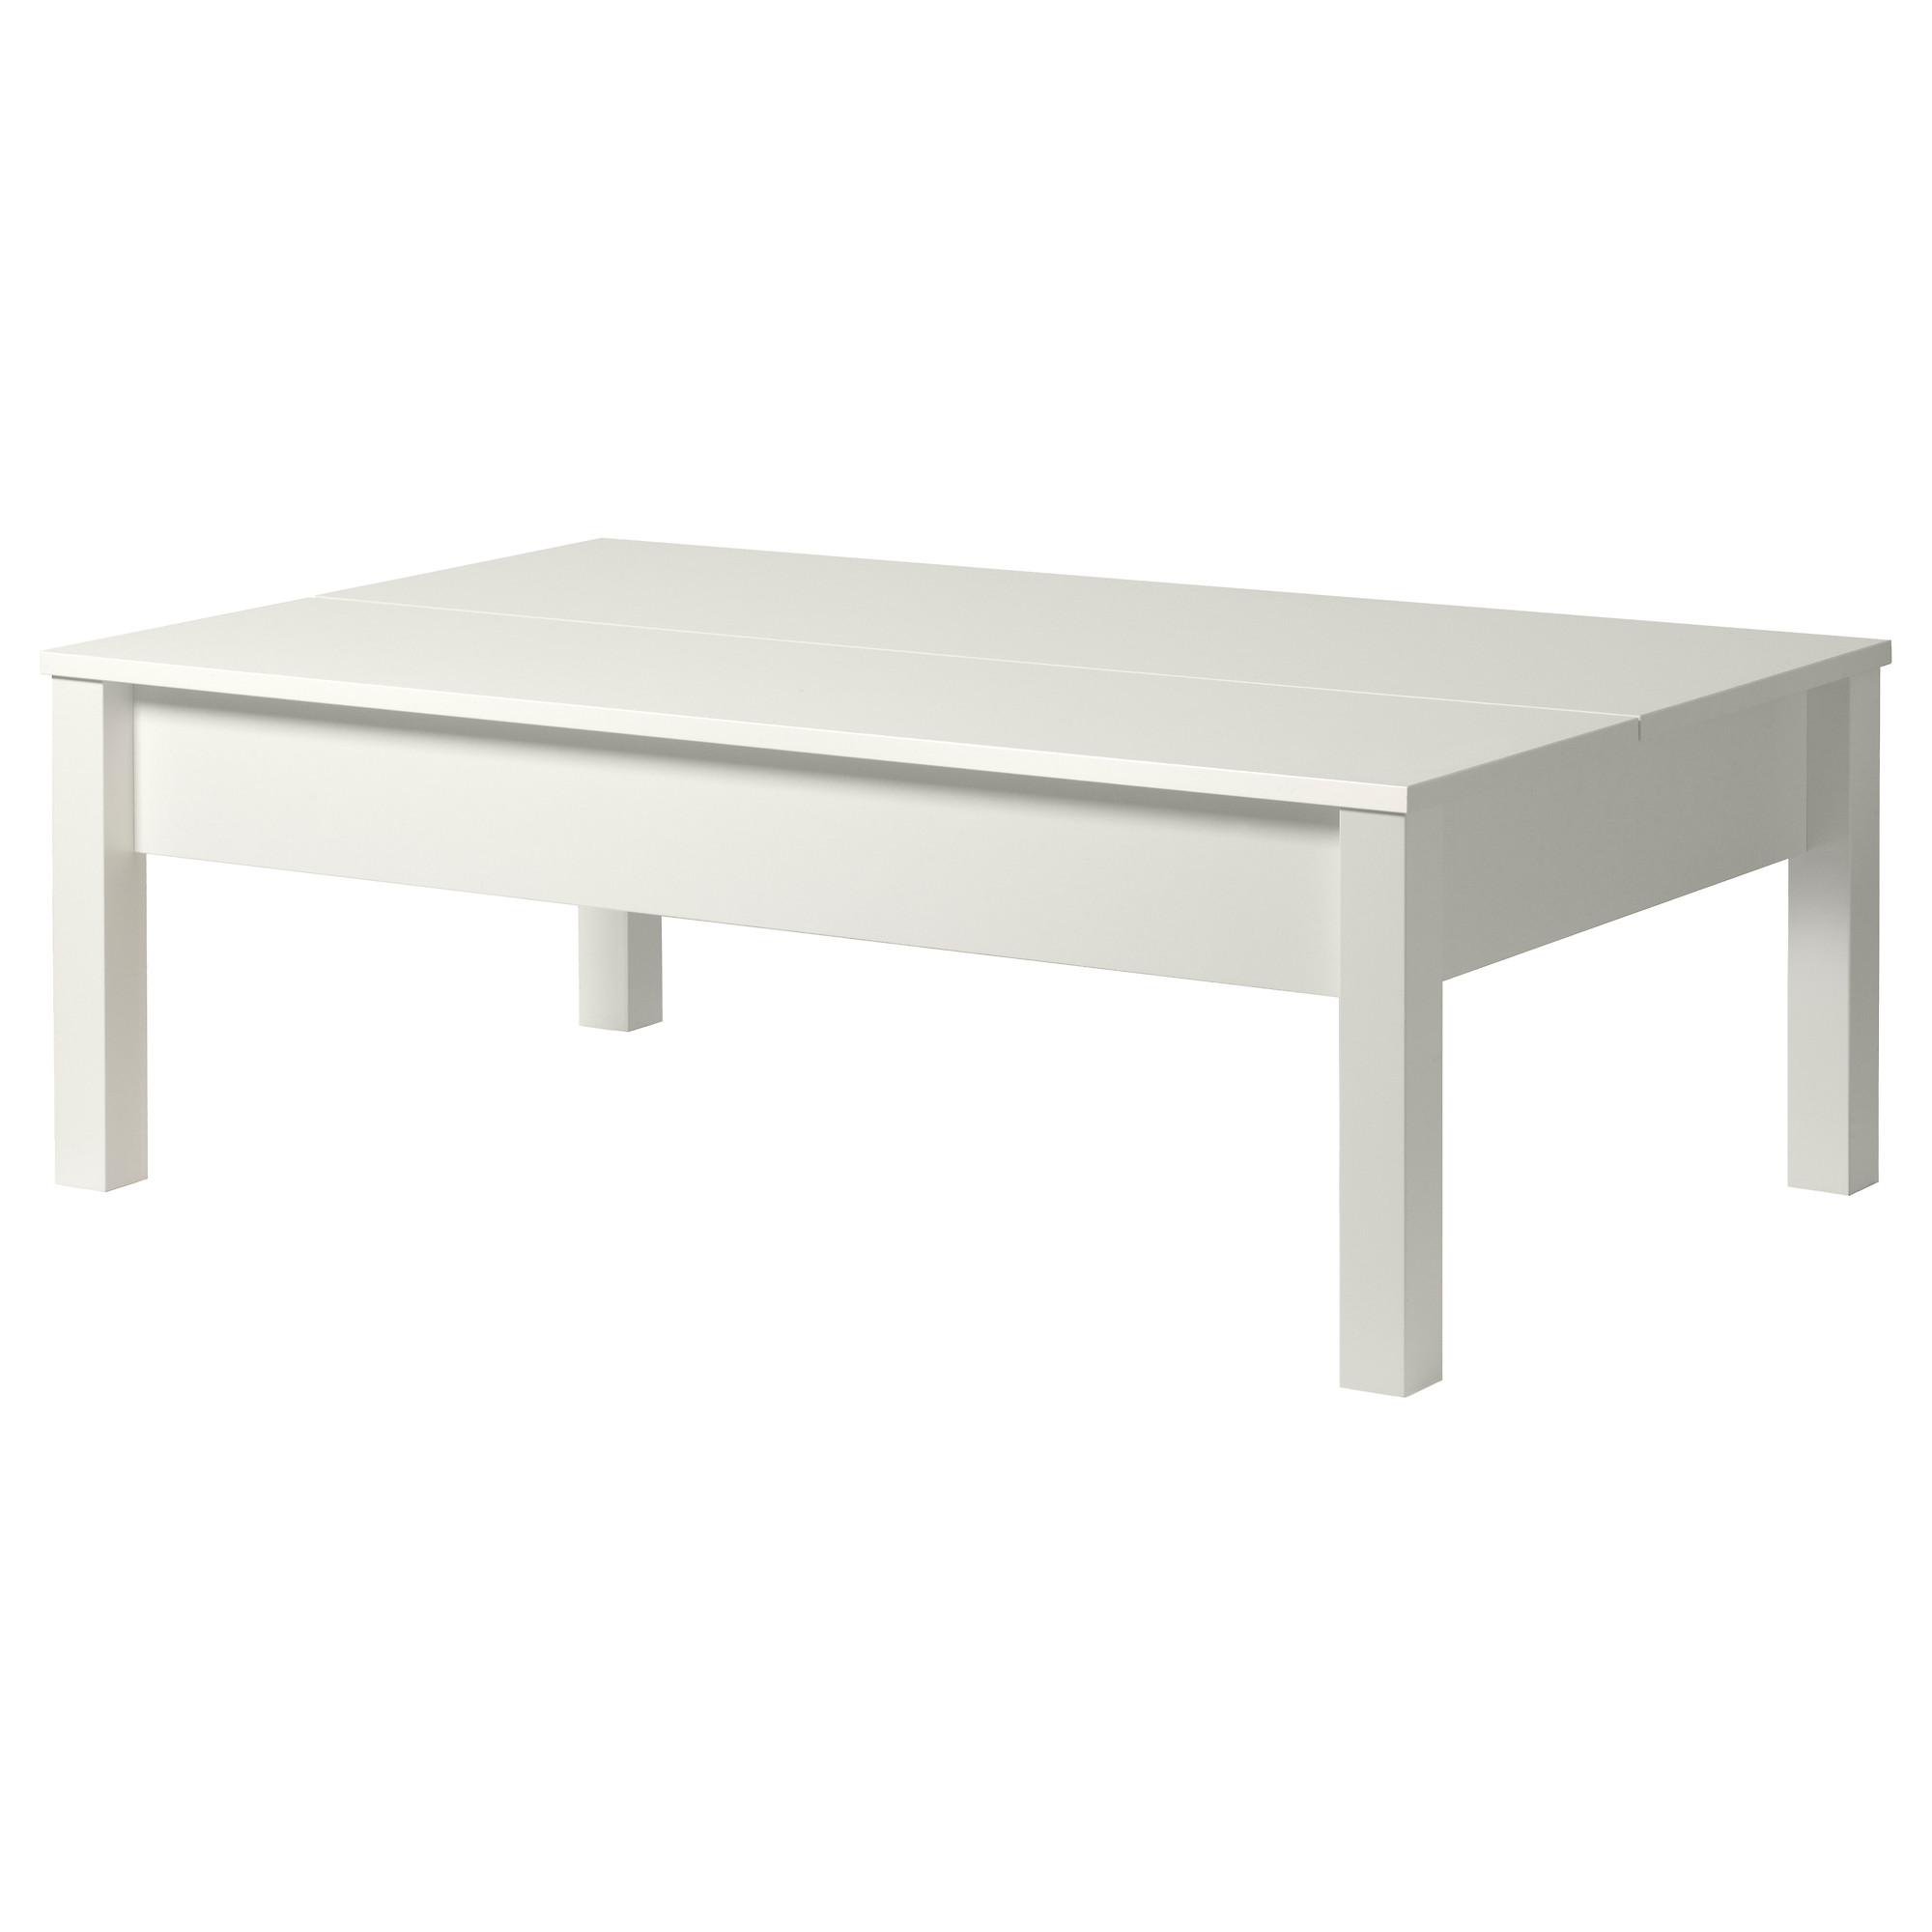 Table basse jardin ikea mobilier design d coration d 39 int rieur - Personnaliser table basse ikea ...